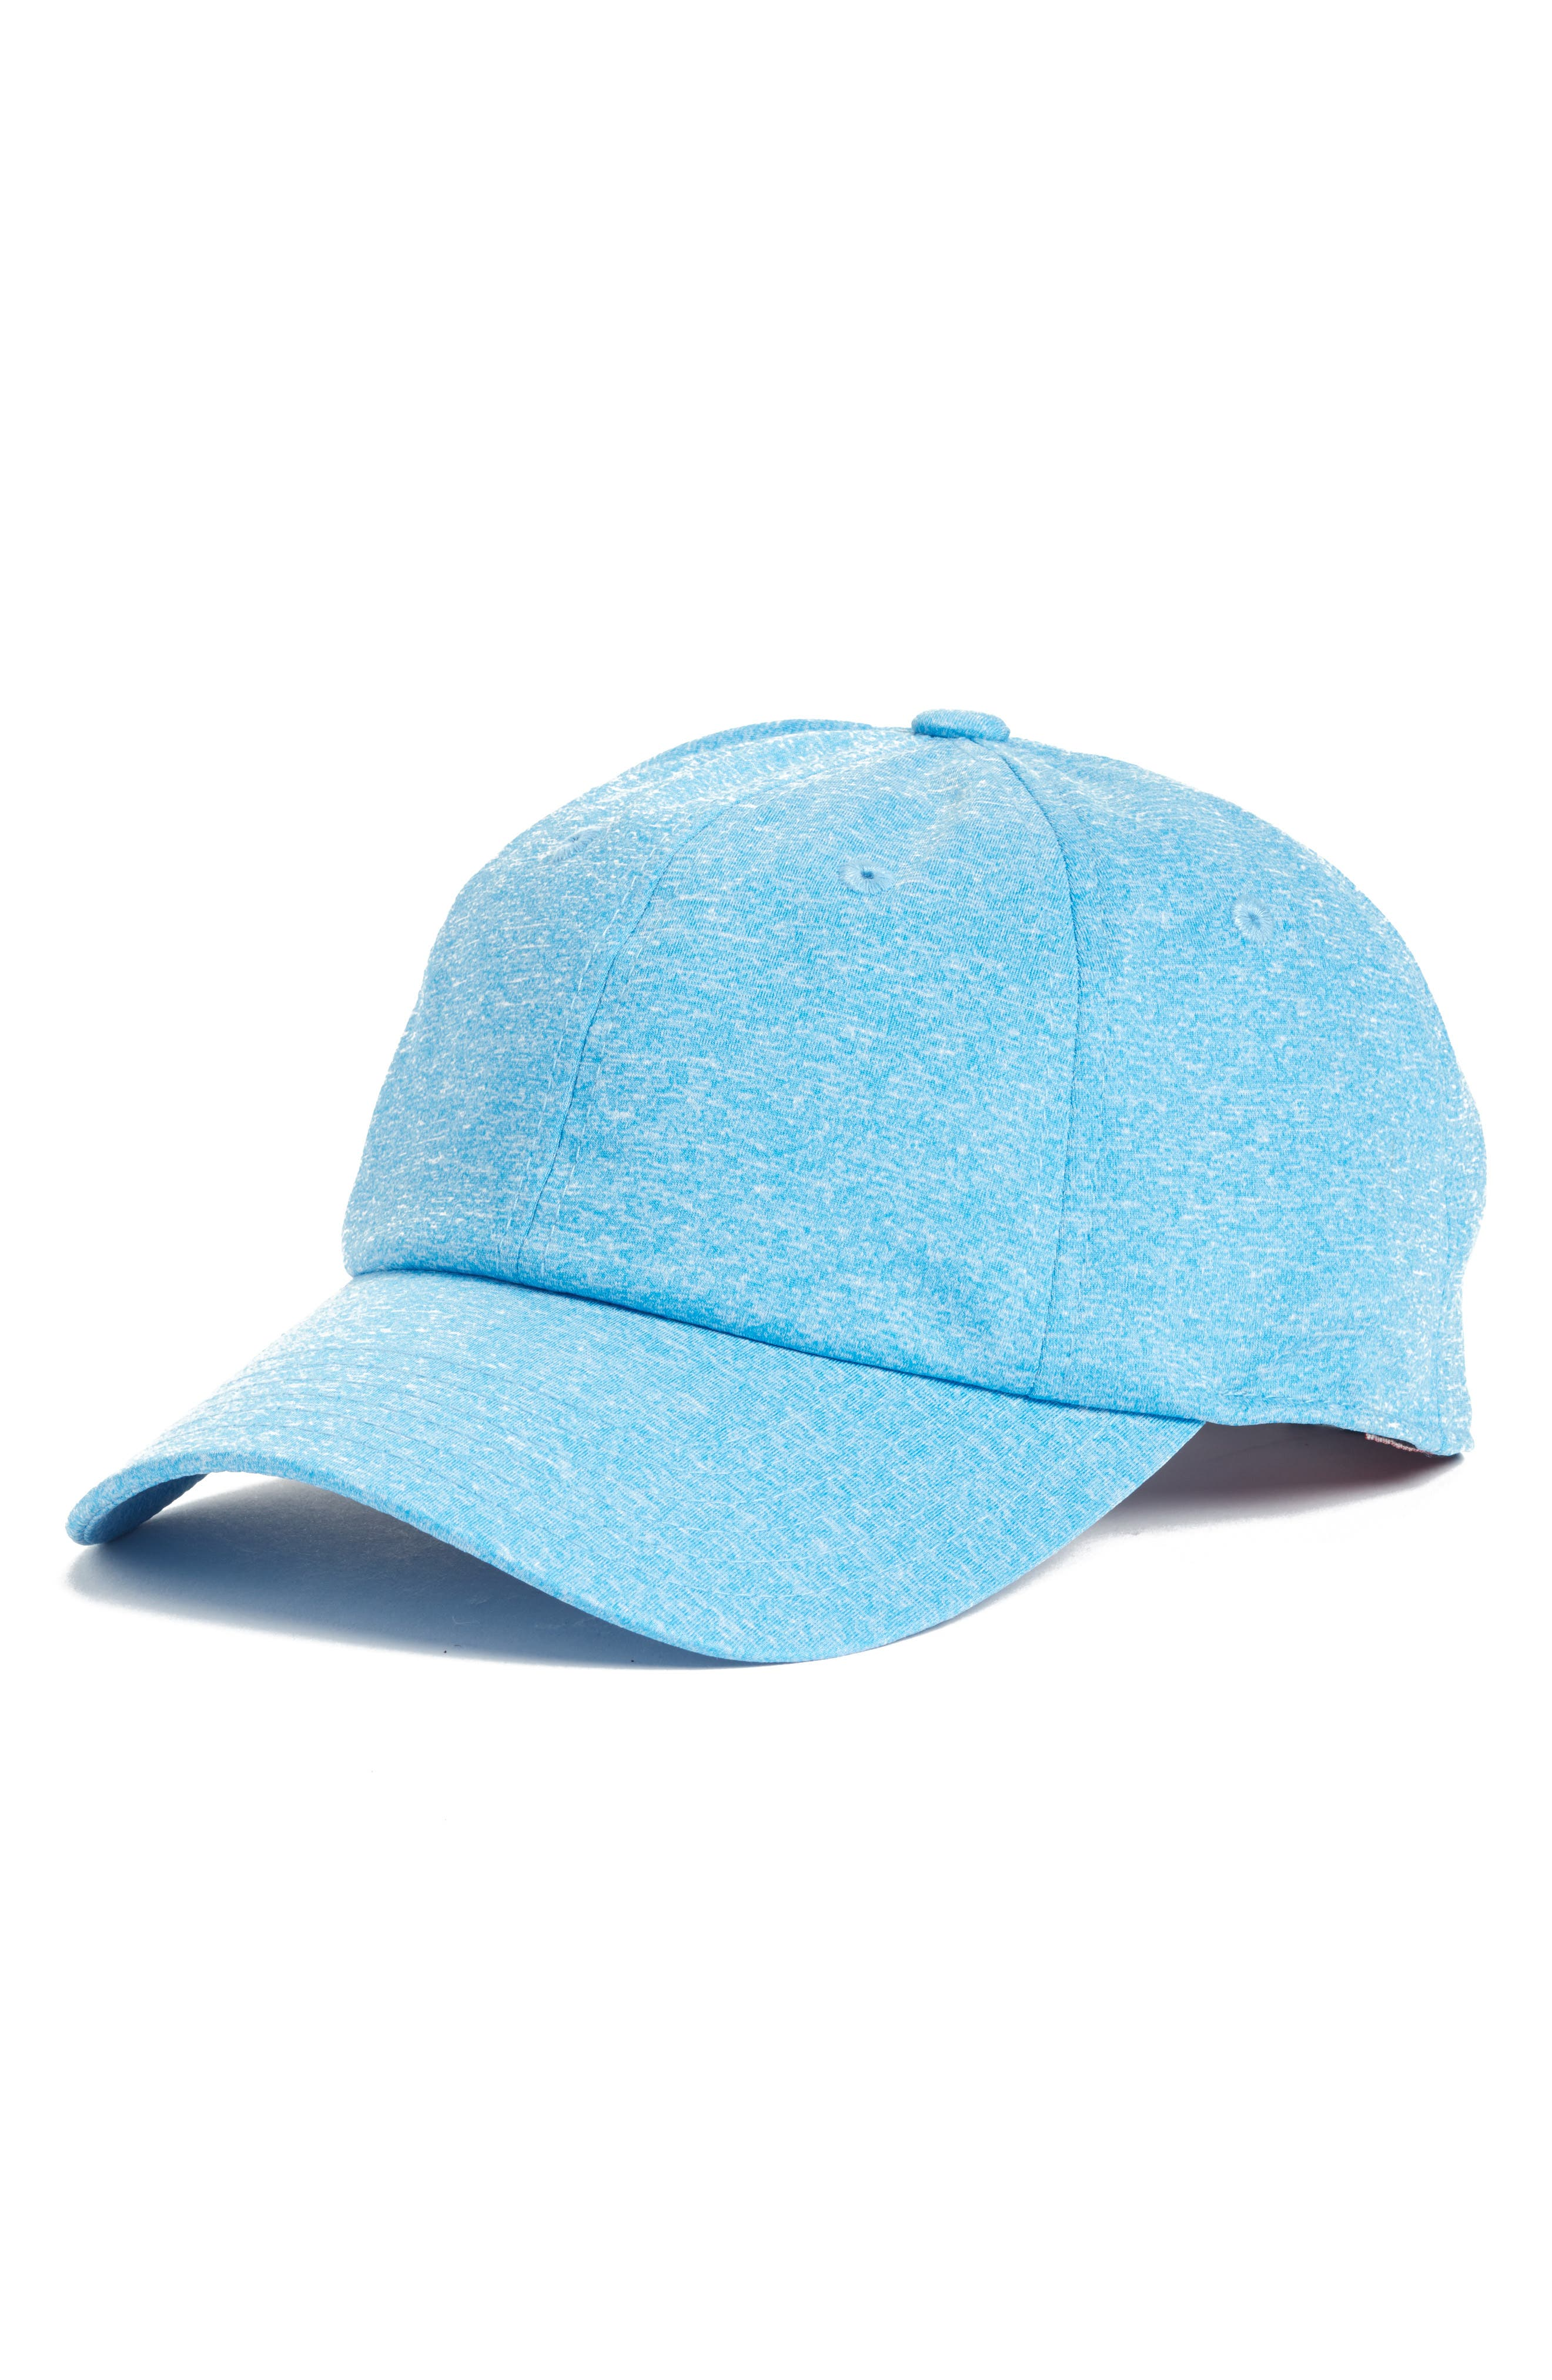 Heathered Tech Hat,                         Main,                         color, Blue